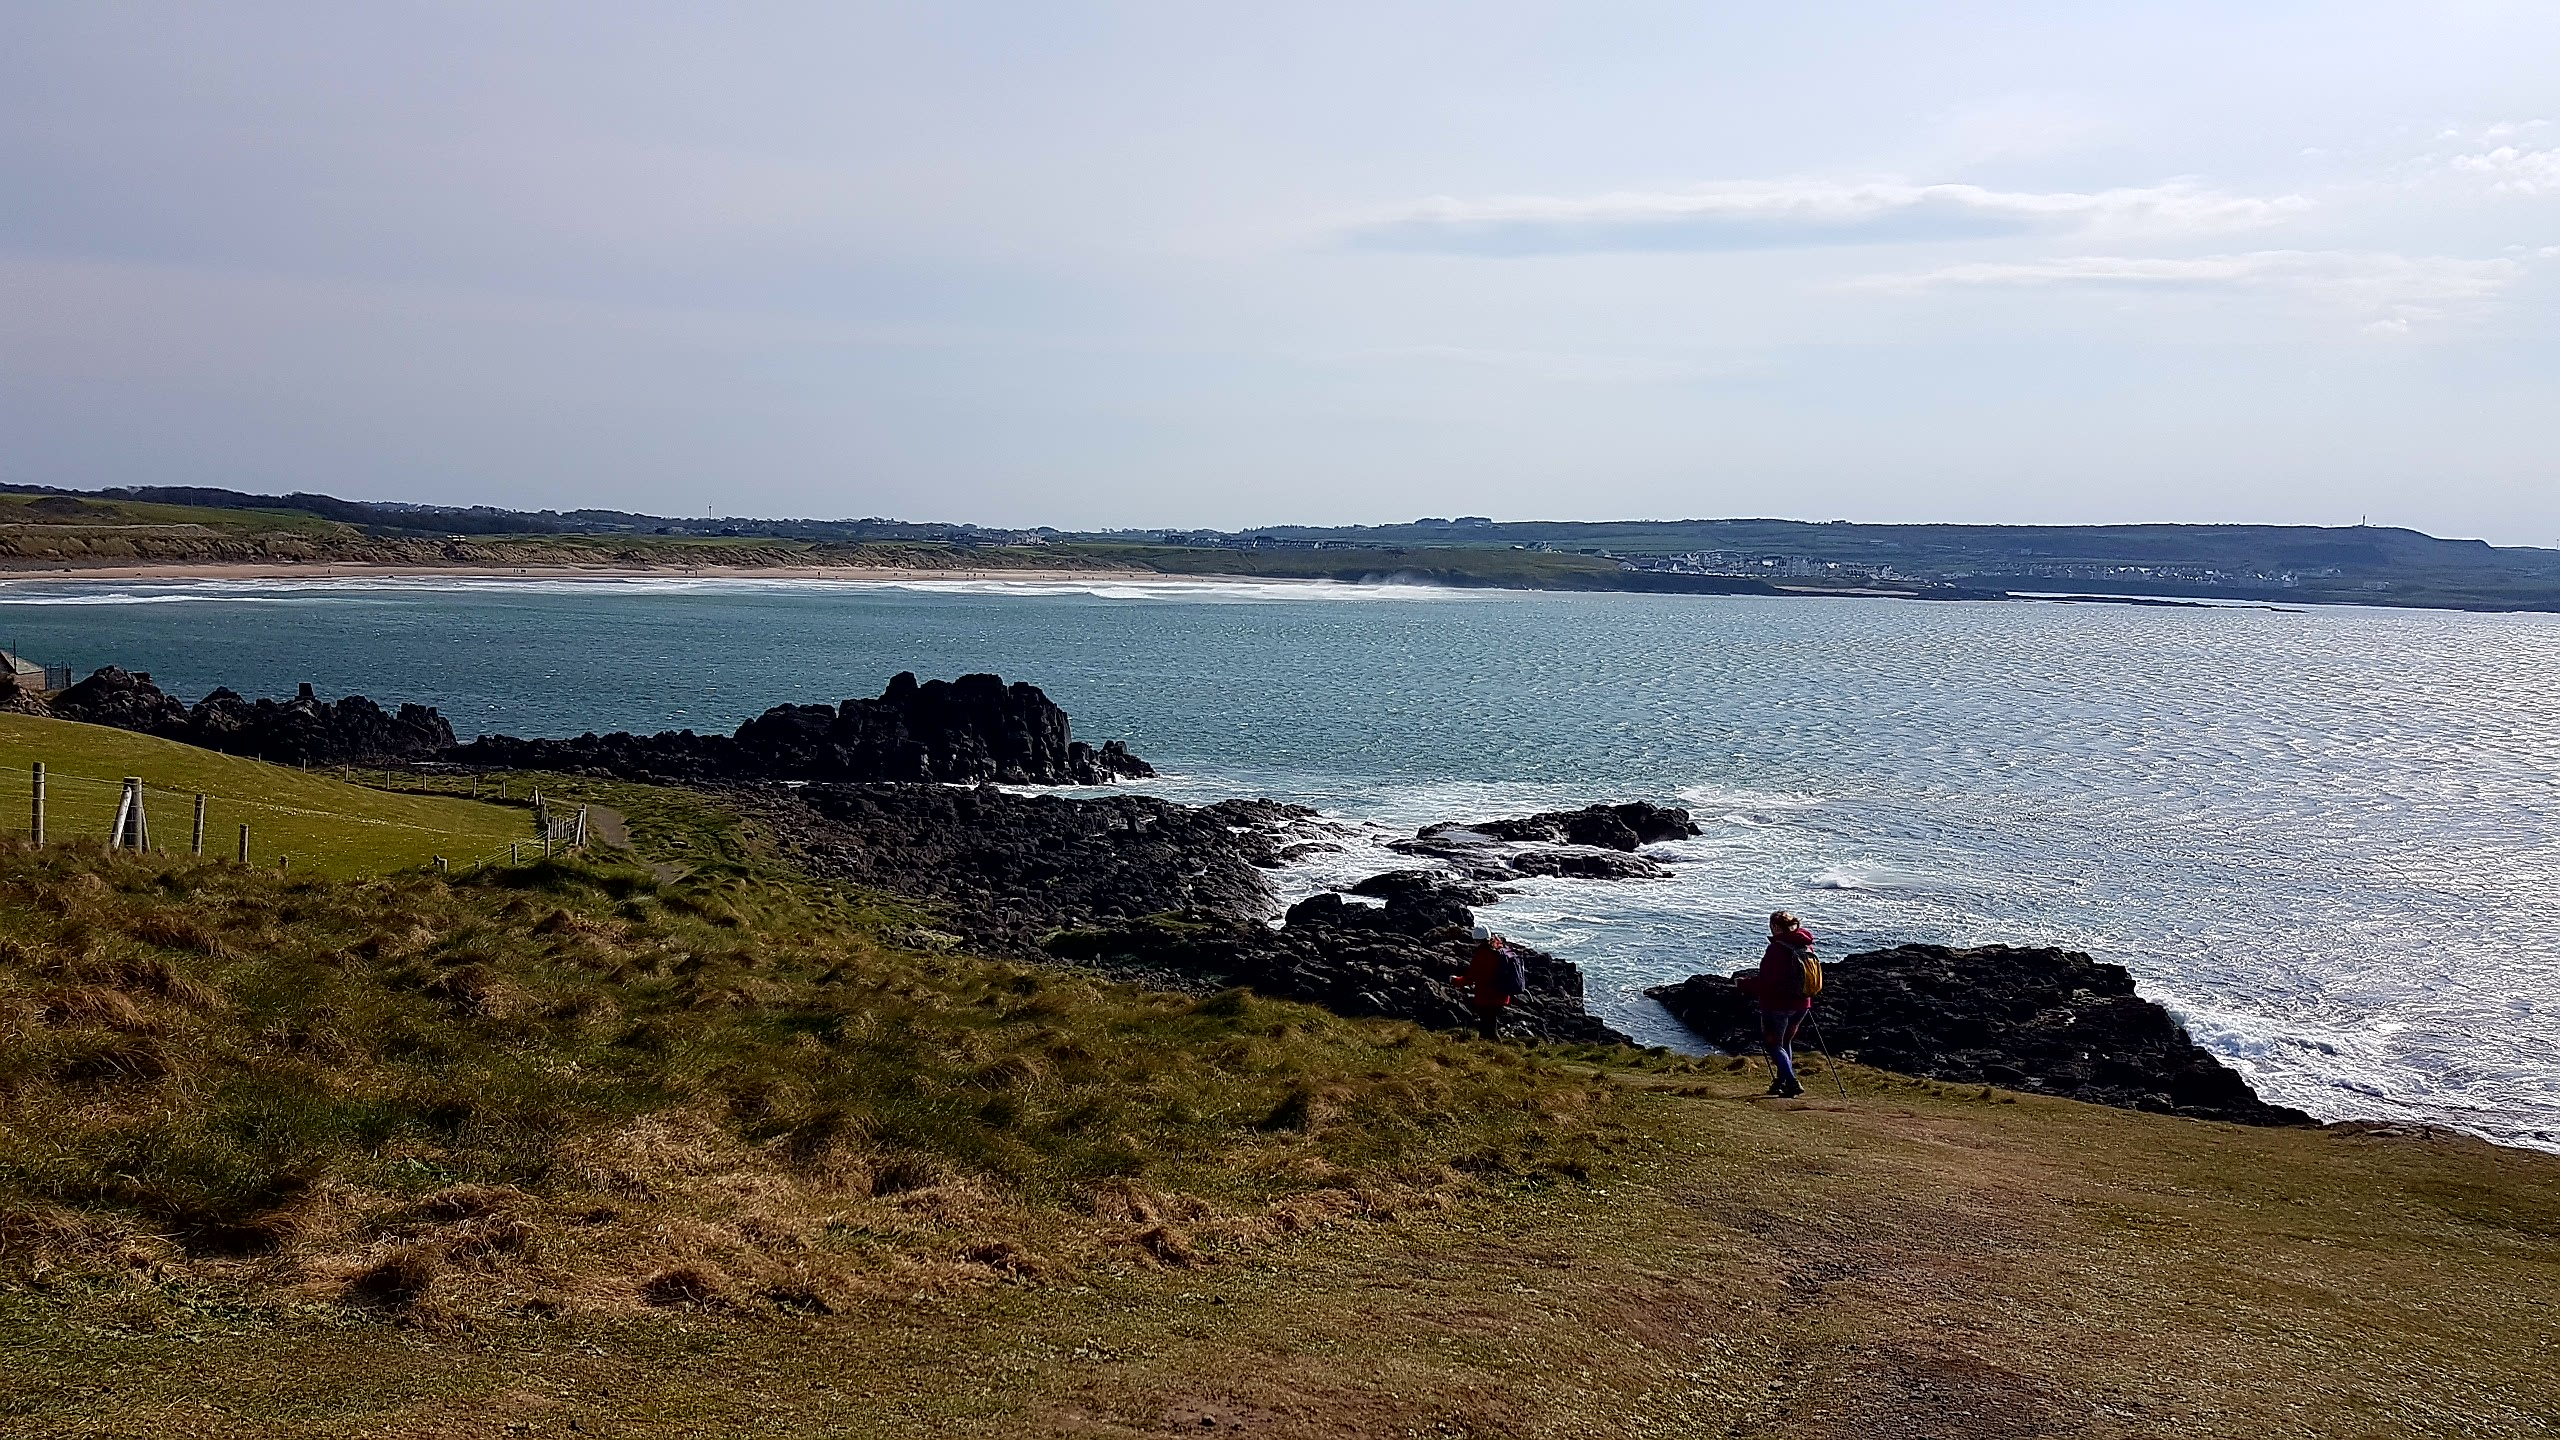 Looking back towards beach and Portballintrae from Runkerry headland